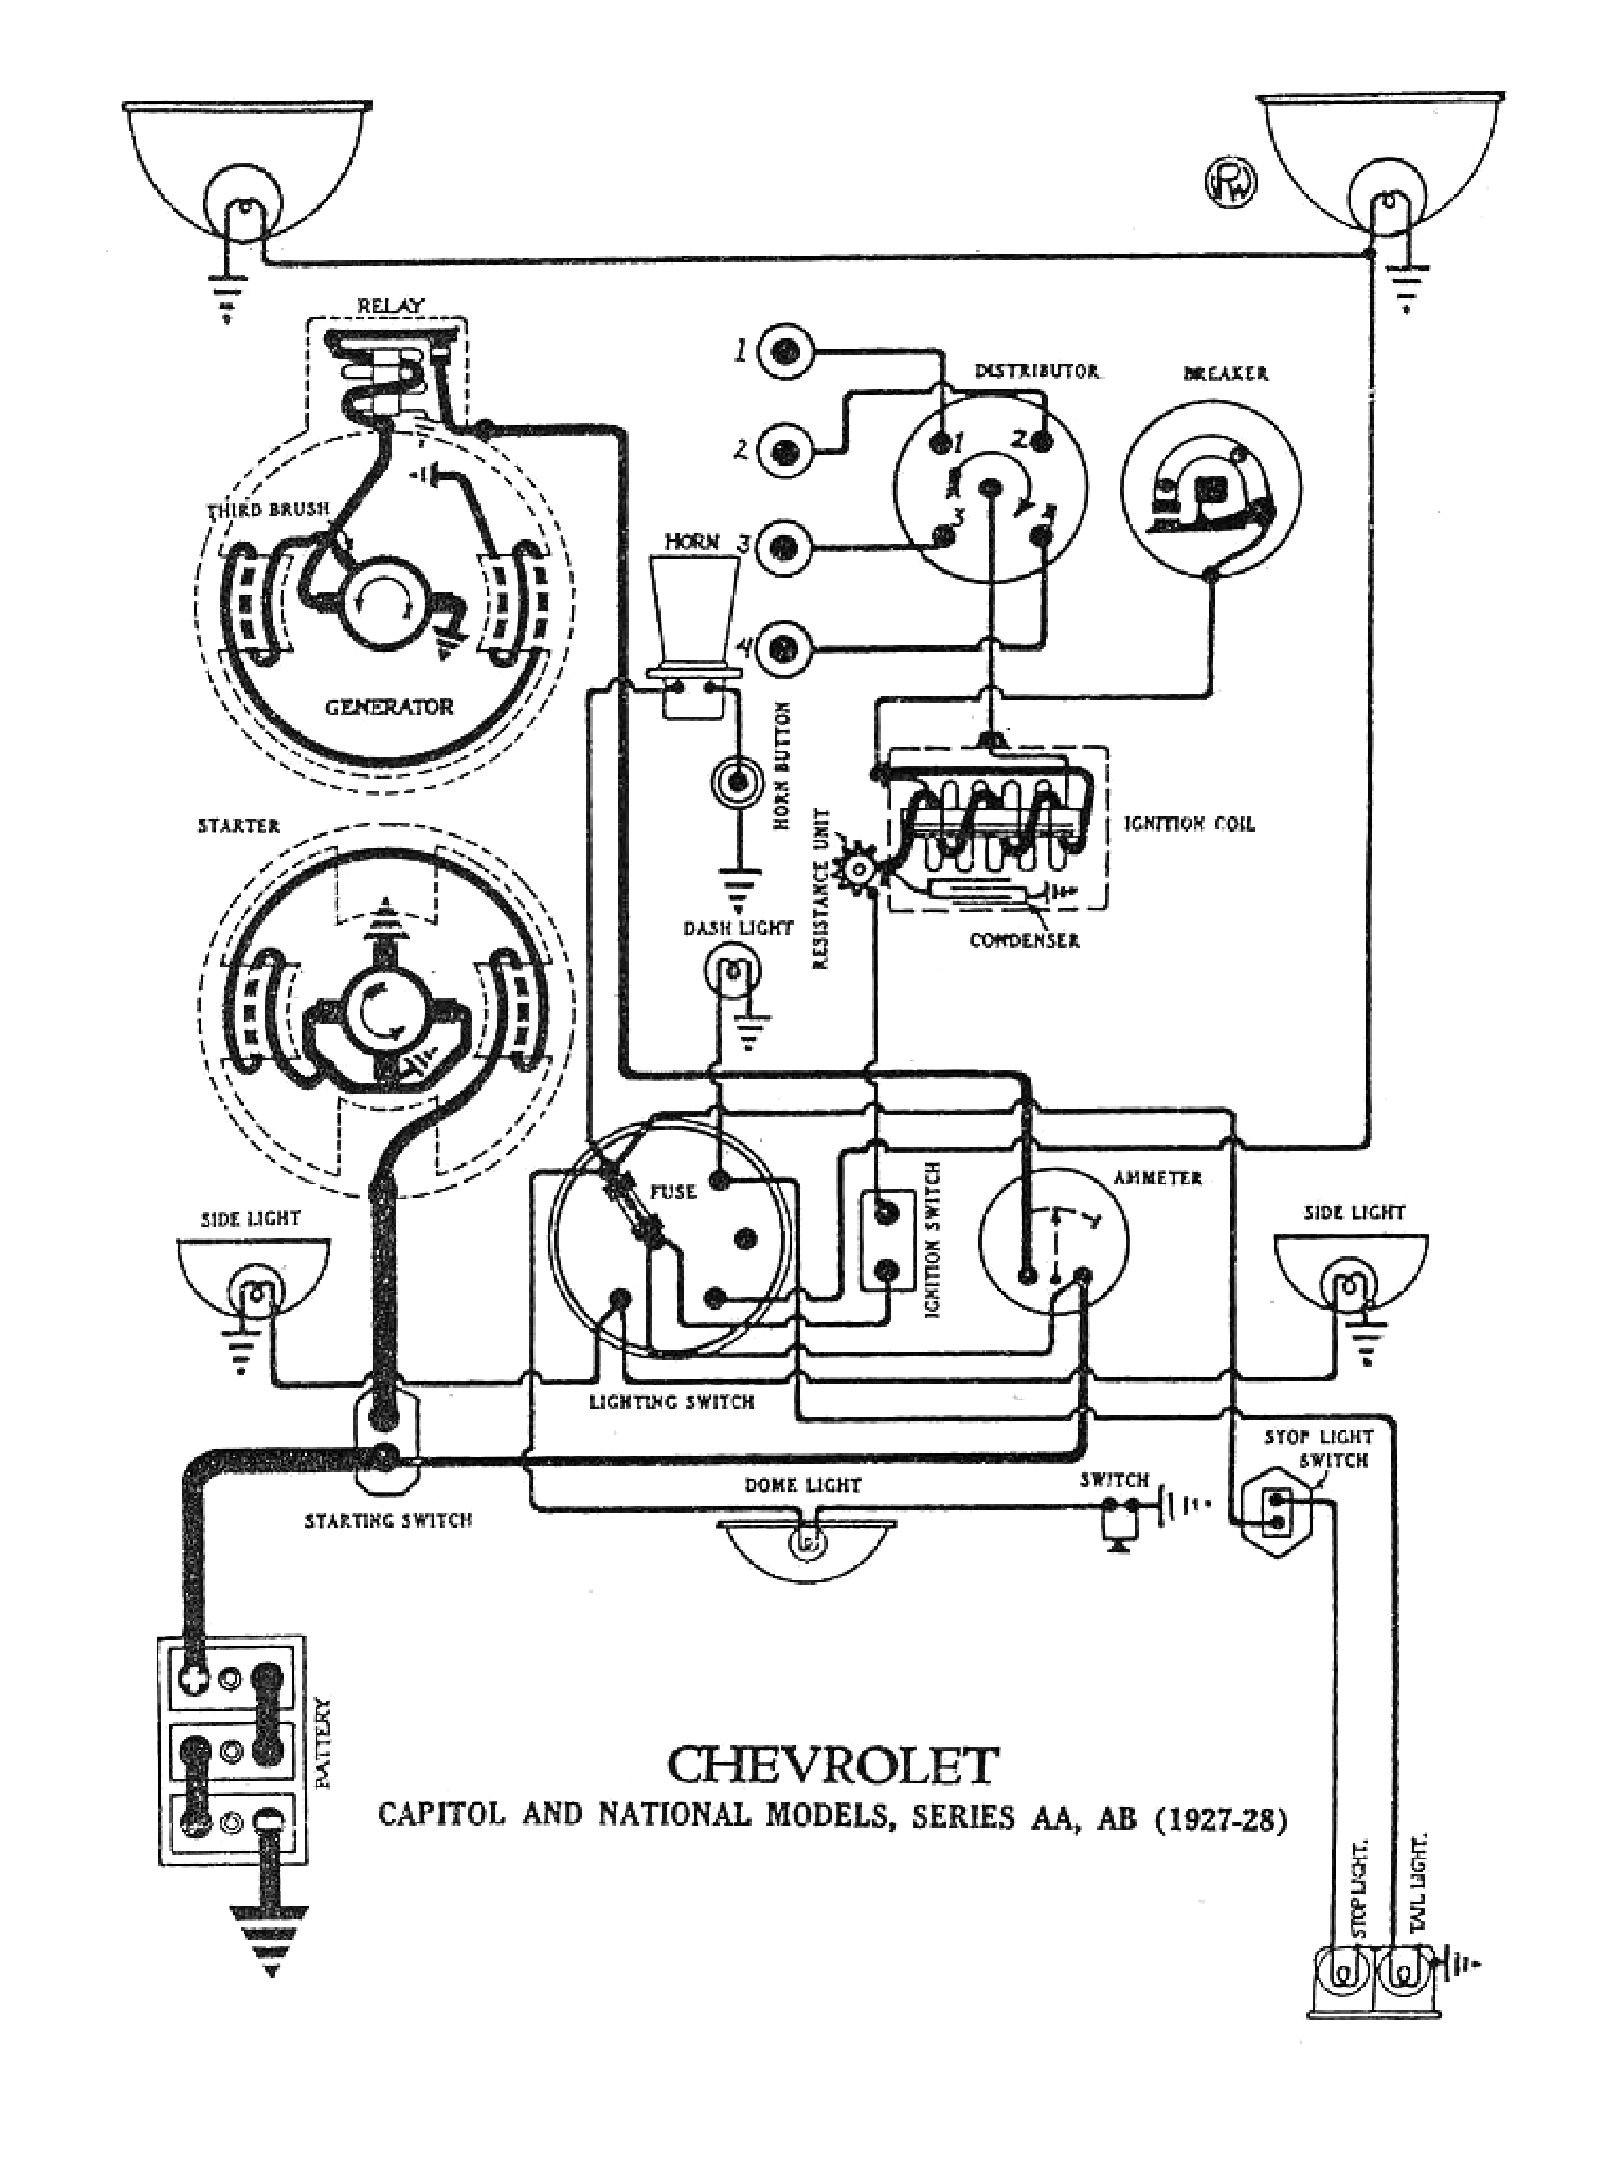 216 chevy engine diagram wiring diagrams my wiring diagram reliance motor wiring  diagram 216 chevy engine